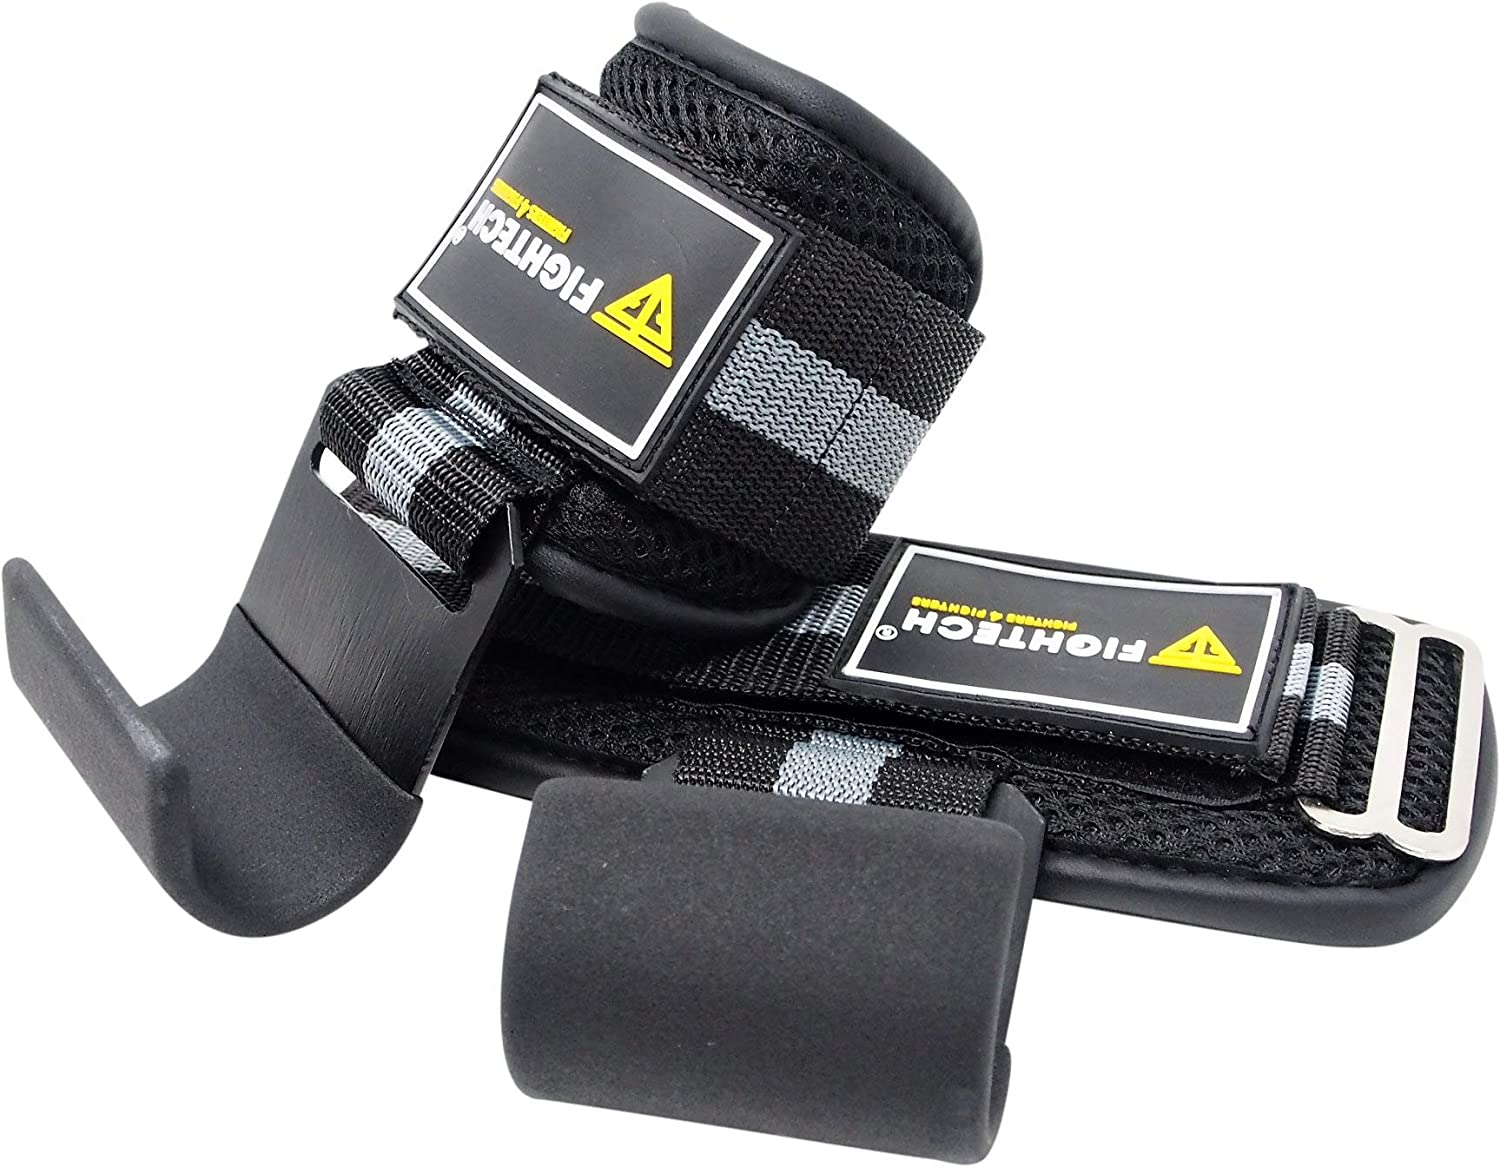 Fire Team Fit Lifting Hook for Weightlifting /& Body Building for Men /& Women Deadlifts Powerlifting Padded Wrist Wraps /& Hook Grips for Pullups